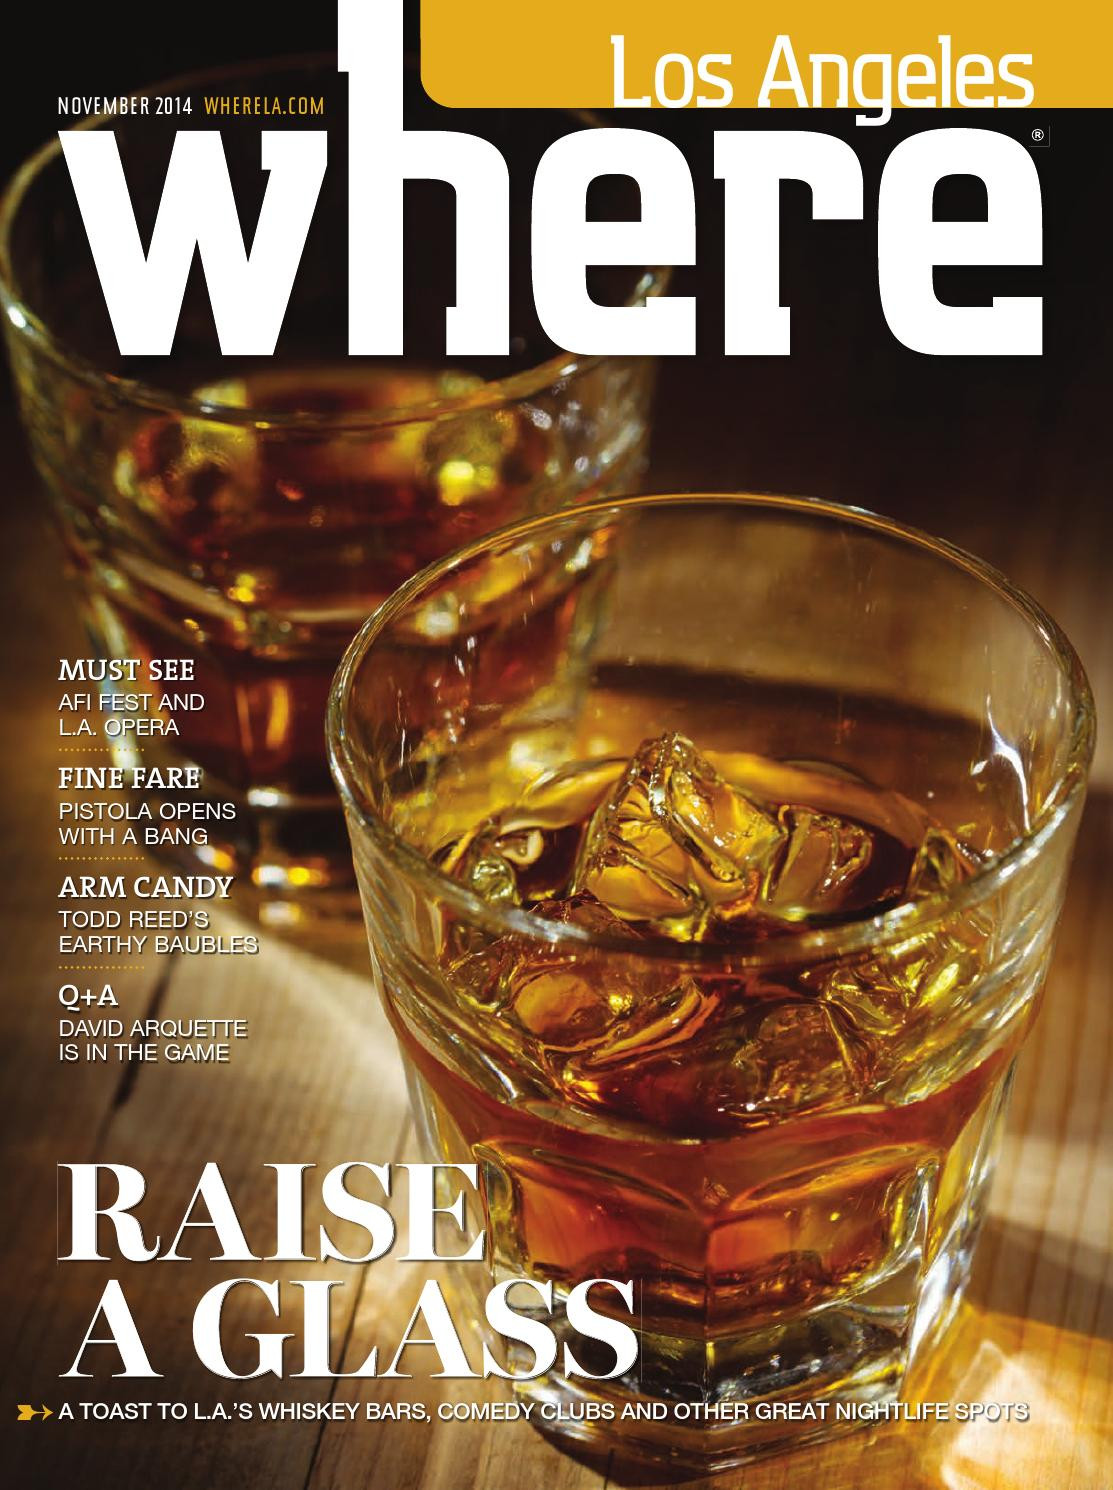 wholesale glass vases in downtown los angeles of where los angeles magazine november 2014 by socalmedia issuu for page 1